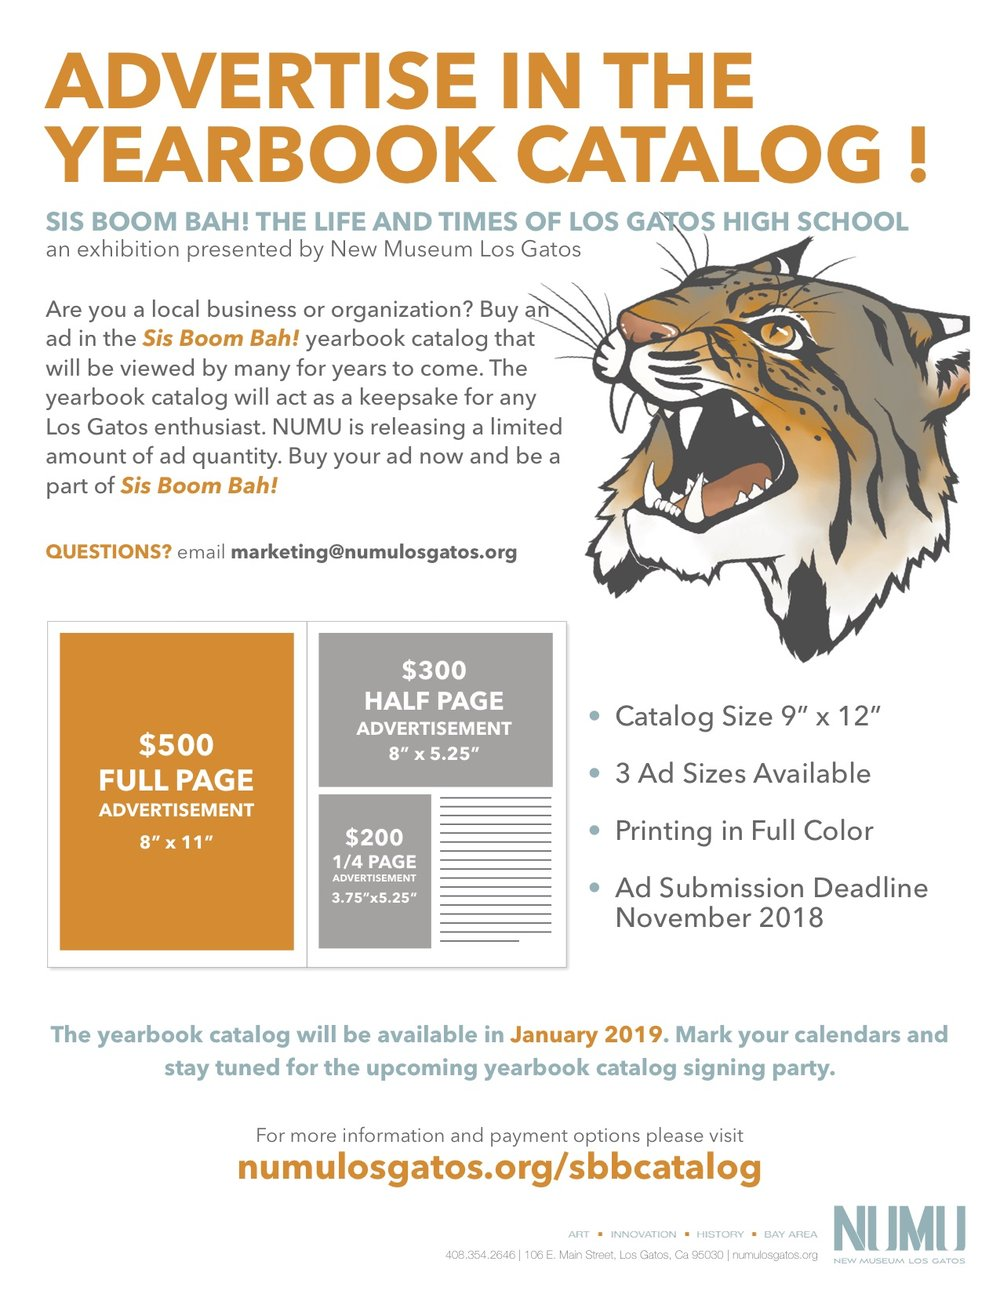 Sis Boom Bah Yearbook Catalog Advertisment LGHS .jpg